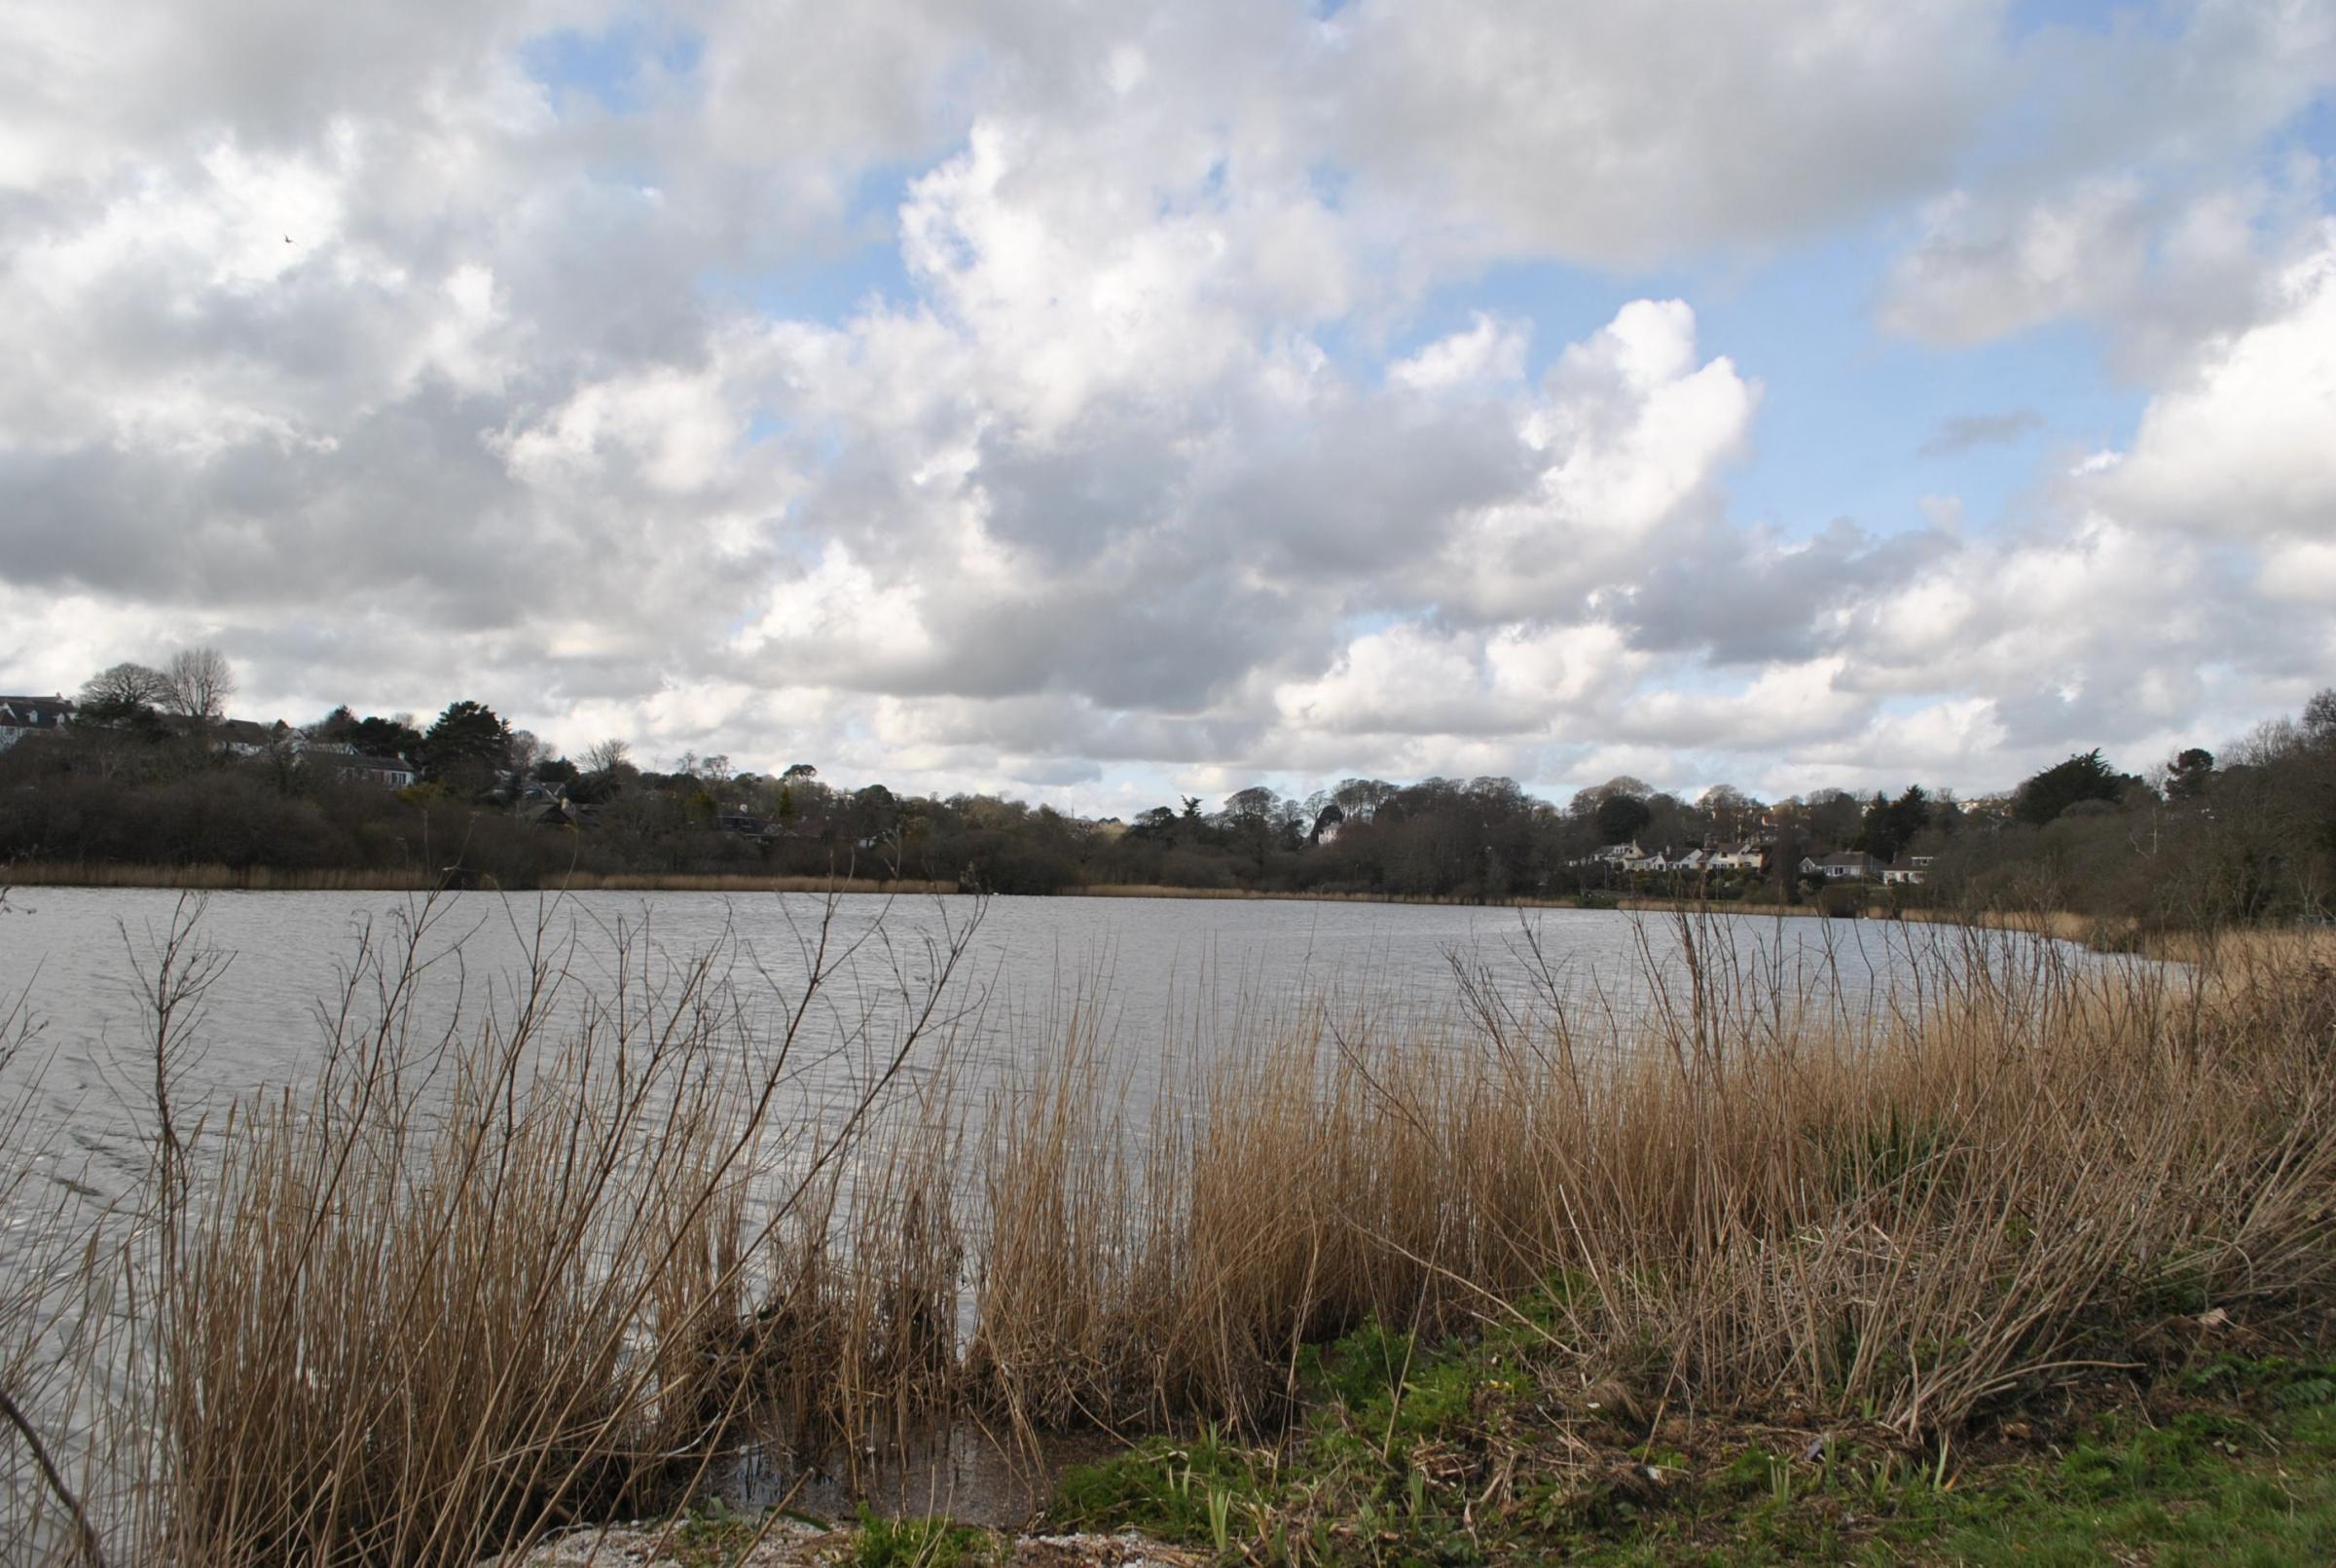 There are concerns the development could impact on the Swanpool SSI.